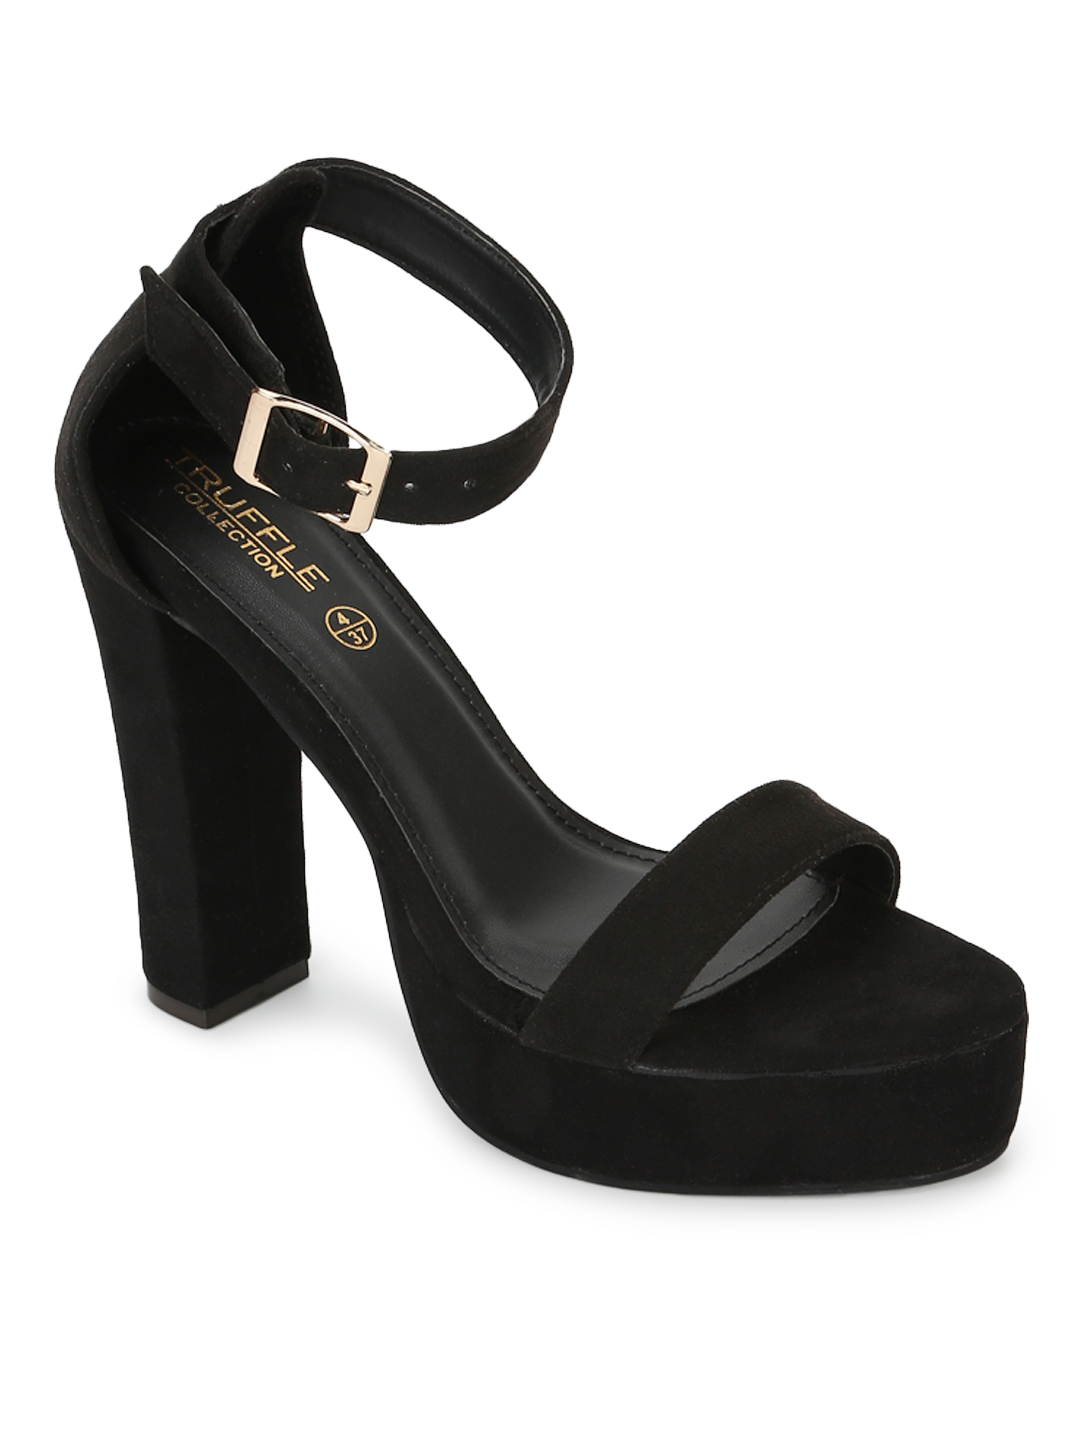 Truffle Collection   Truffle Collection Black Micro High Platform Heels